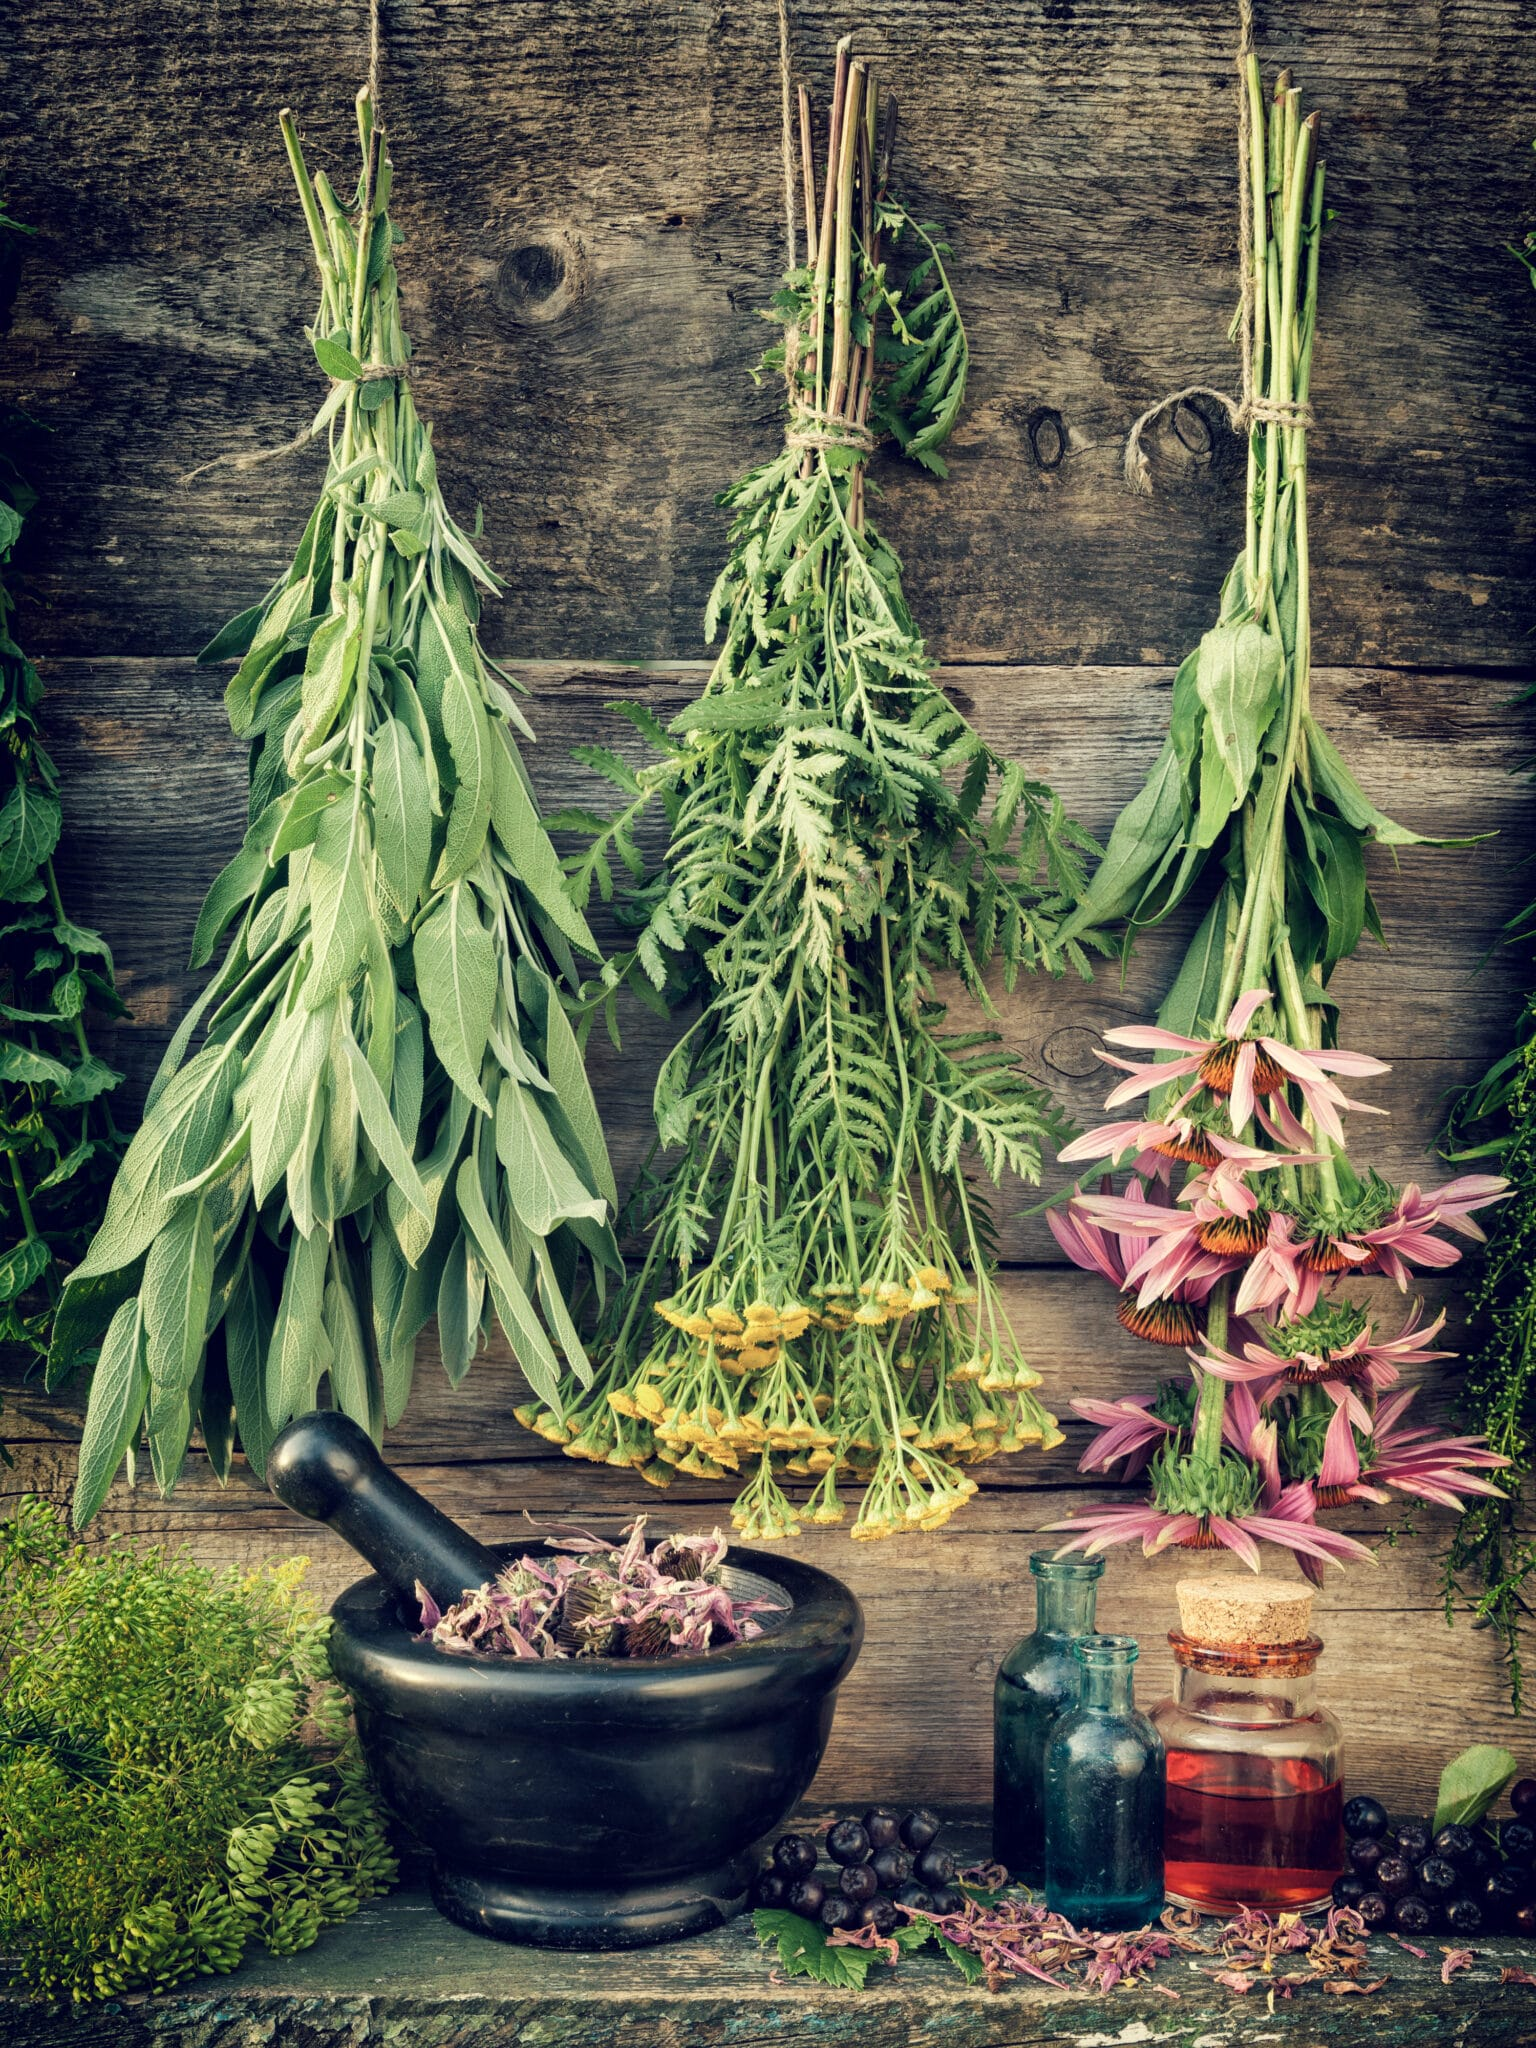 Rustic wooden wall and table with fresh herbs from the garden hanging with twine.  Below there  are jars and bowls.